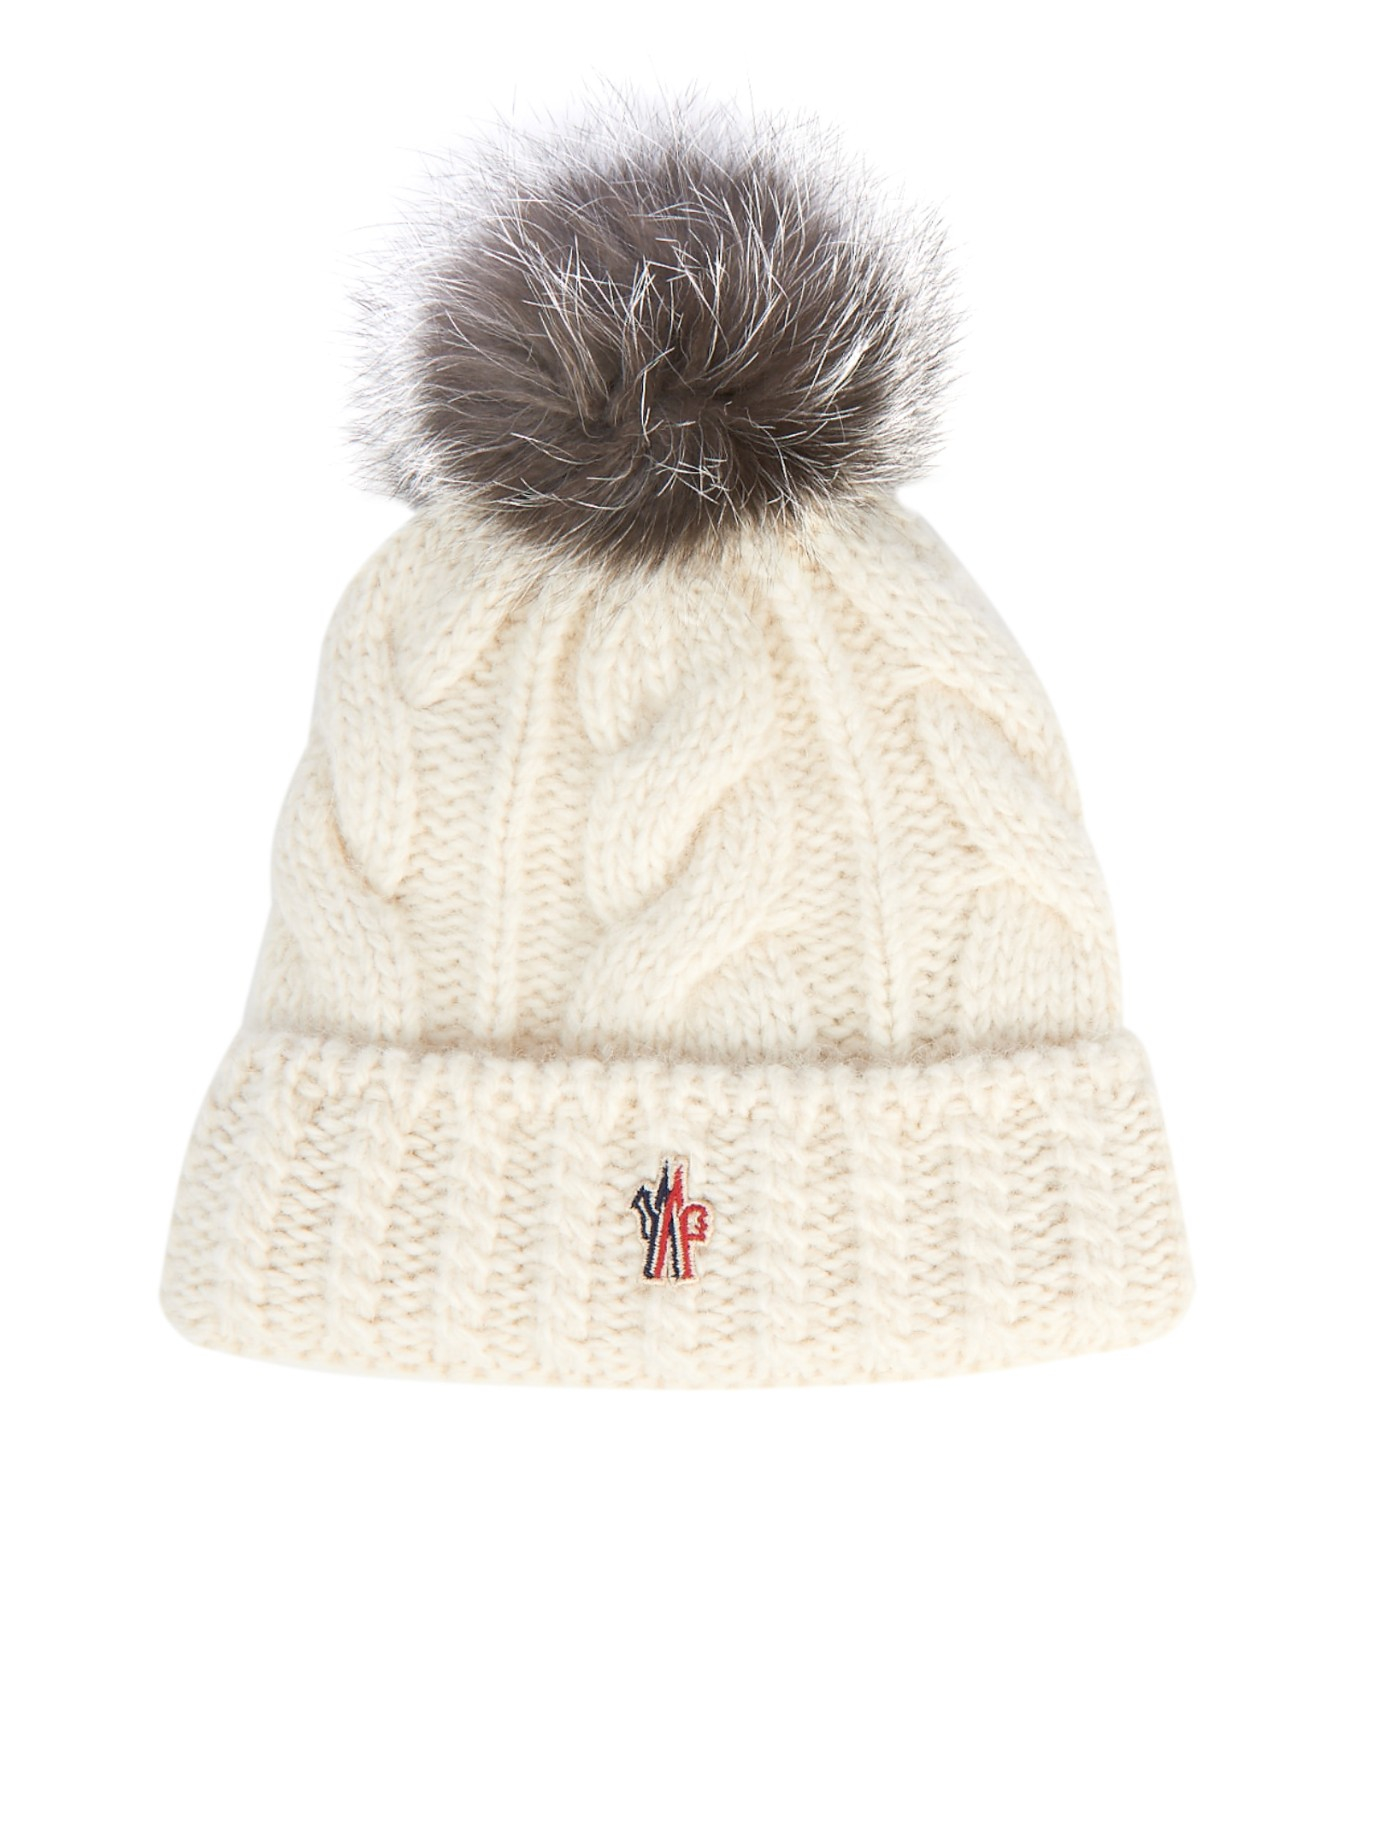 Lyst - Moncler Grenoble Mink-fur Pompom Knitted Beanie Hat in White 84551fef3fbf